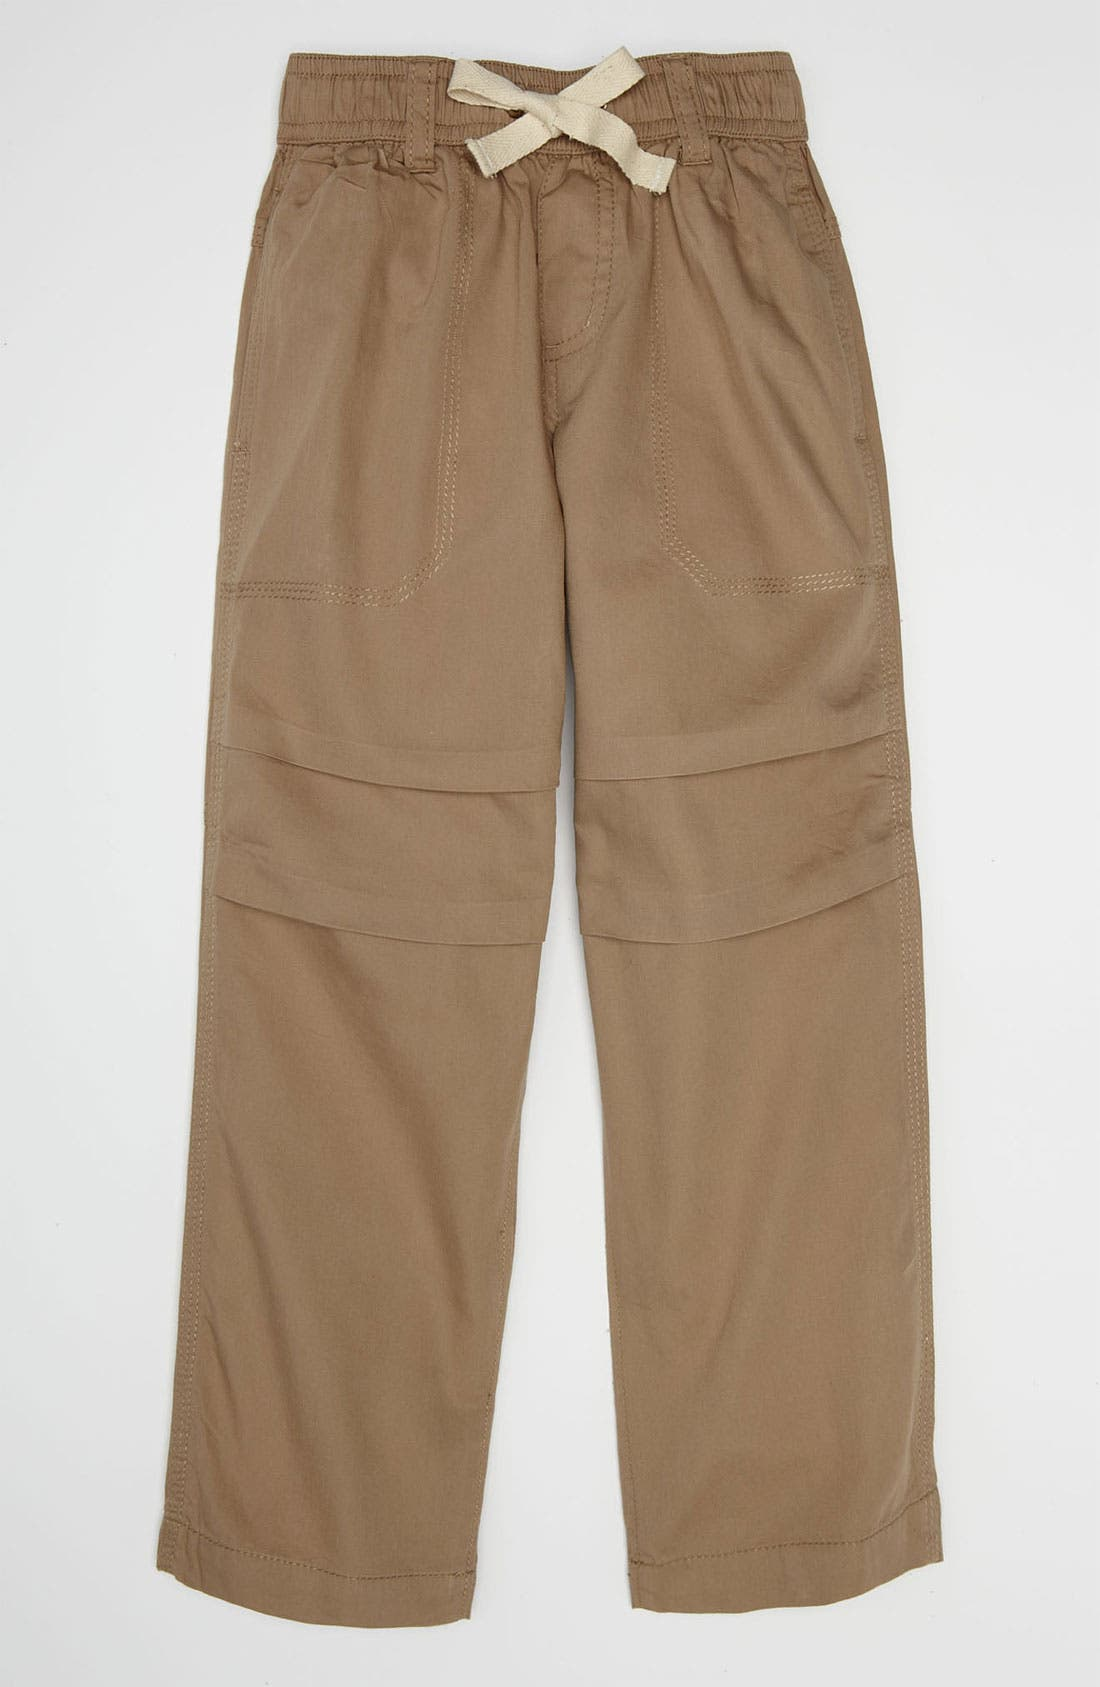 Alternate Image 1 Selected - Peek 'Everyday' Pants (Big Boys)